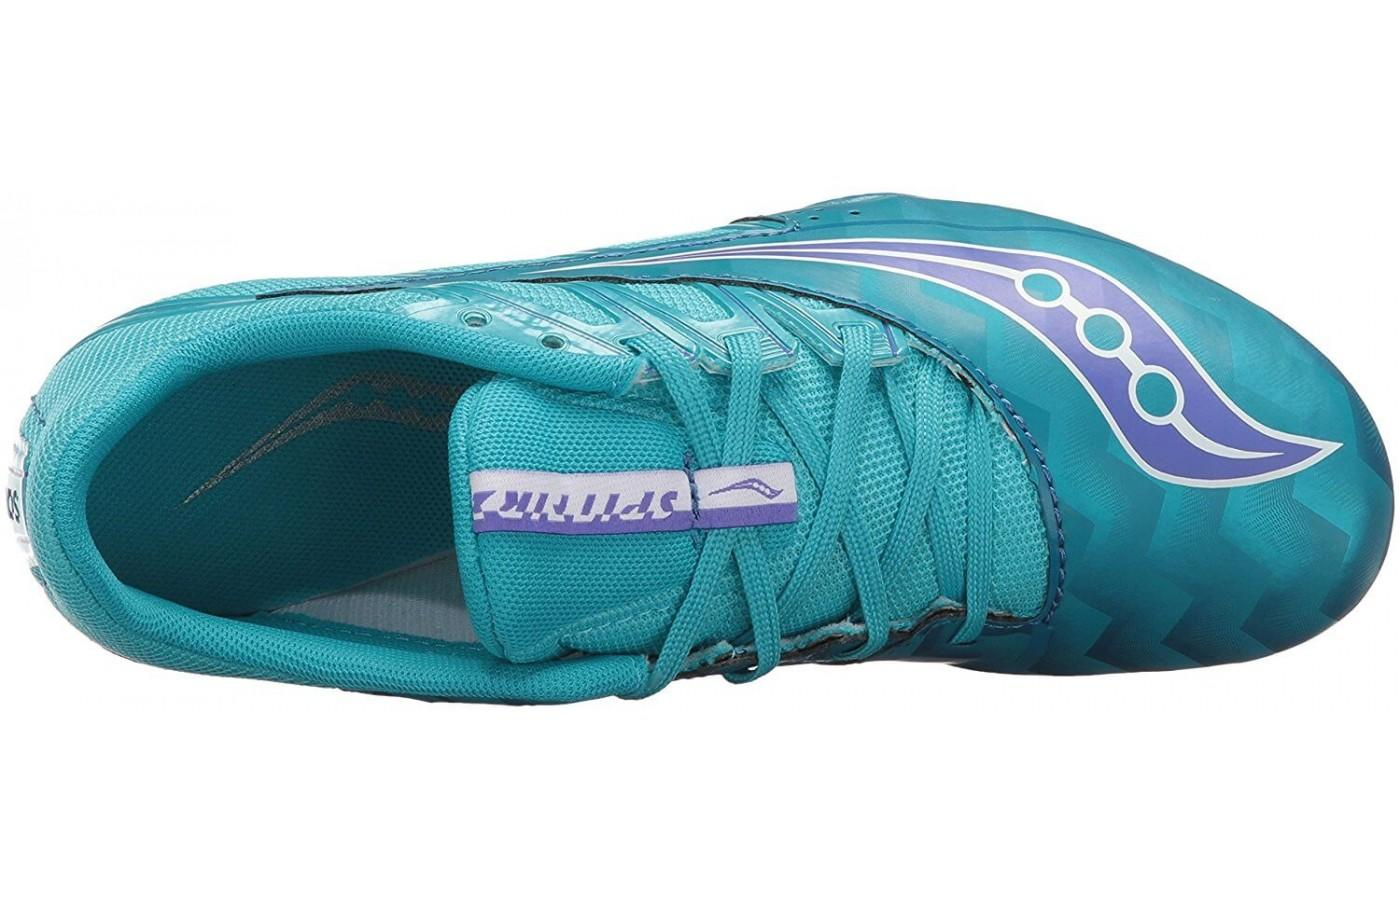 The Saucony Spitfire 4 has a lightweight upper with synthetic overlays to keep the foot in place